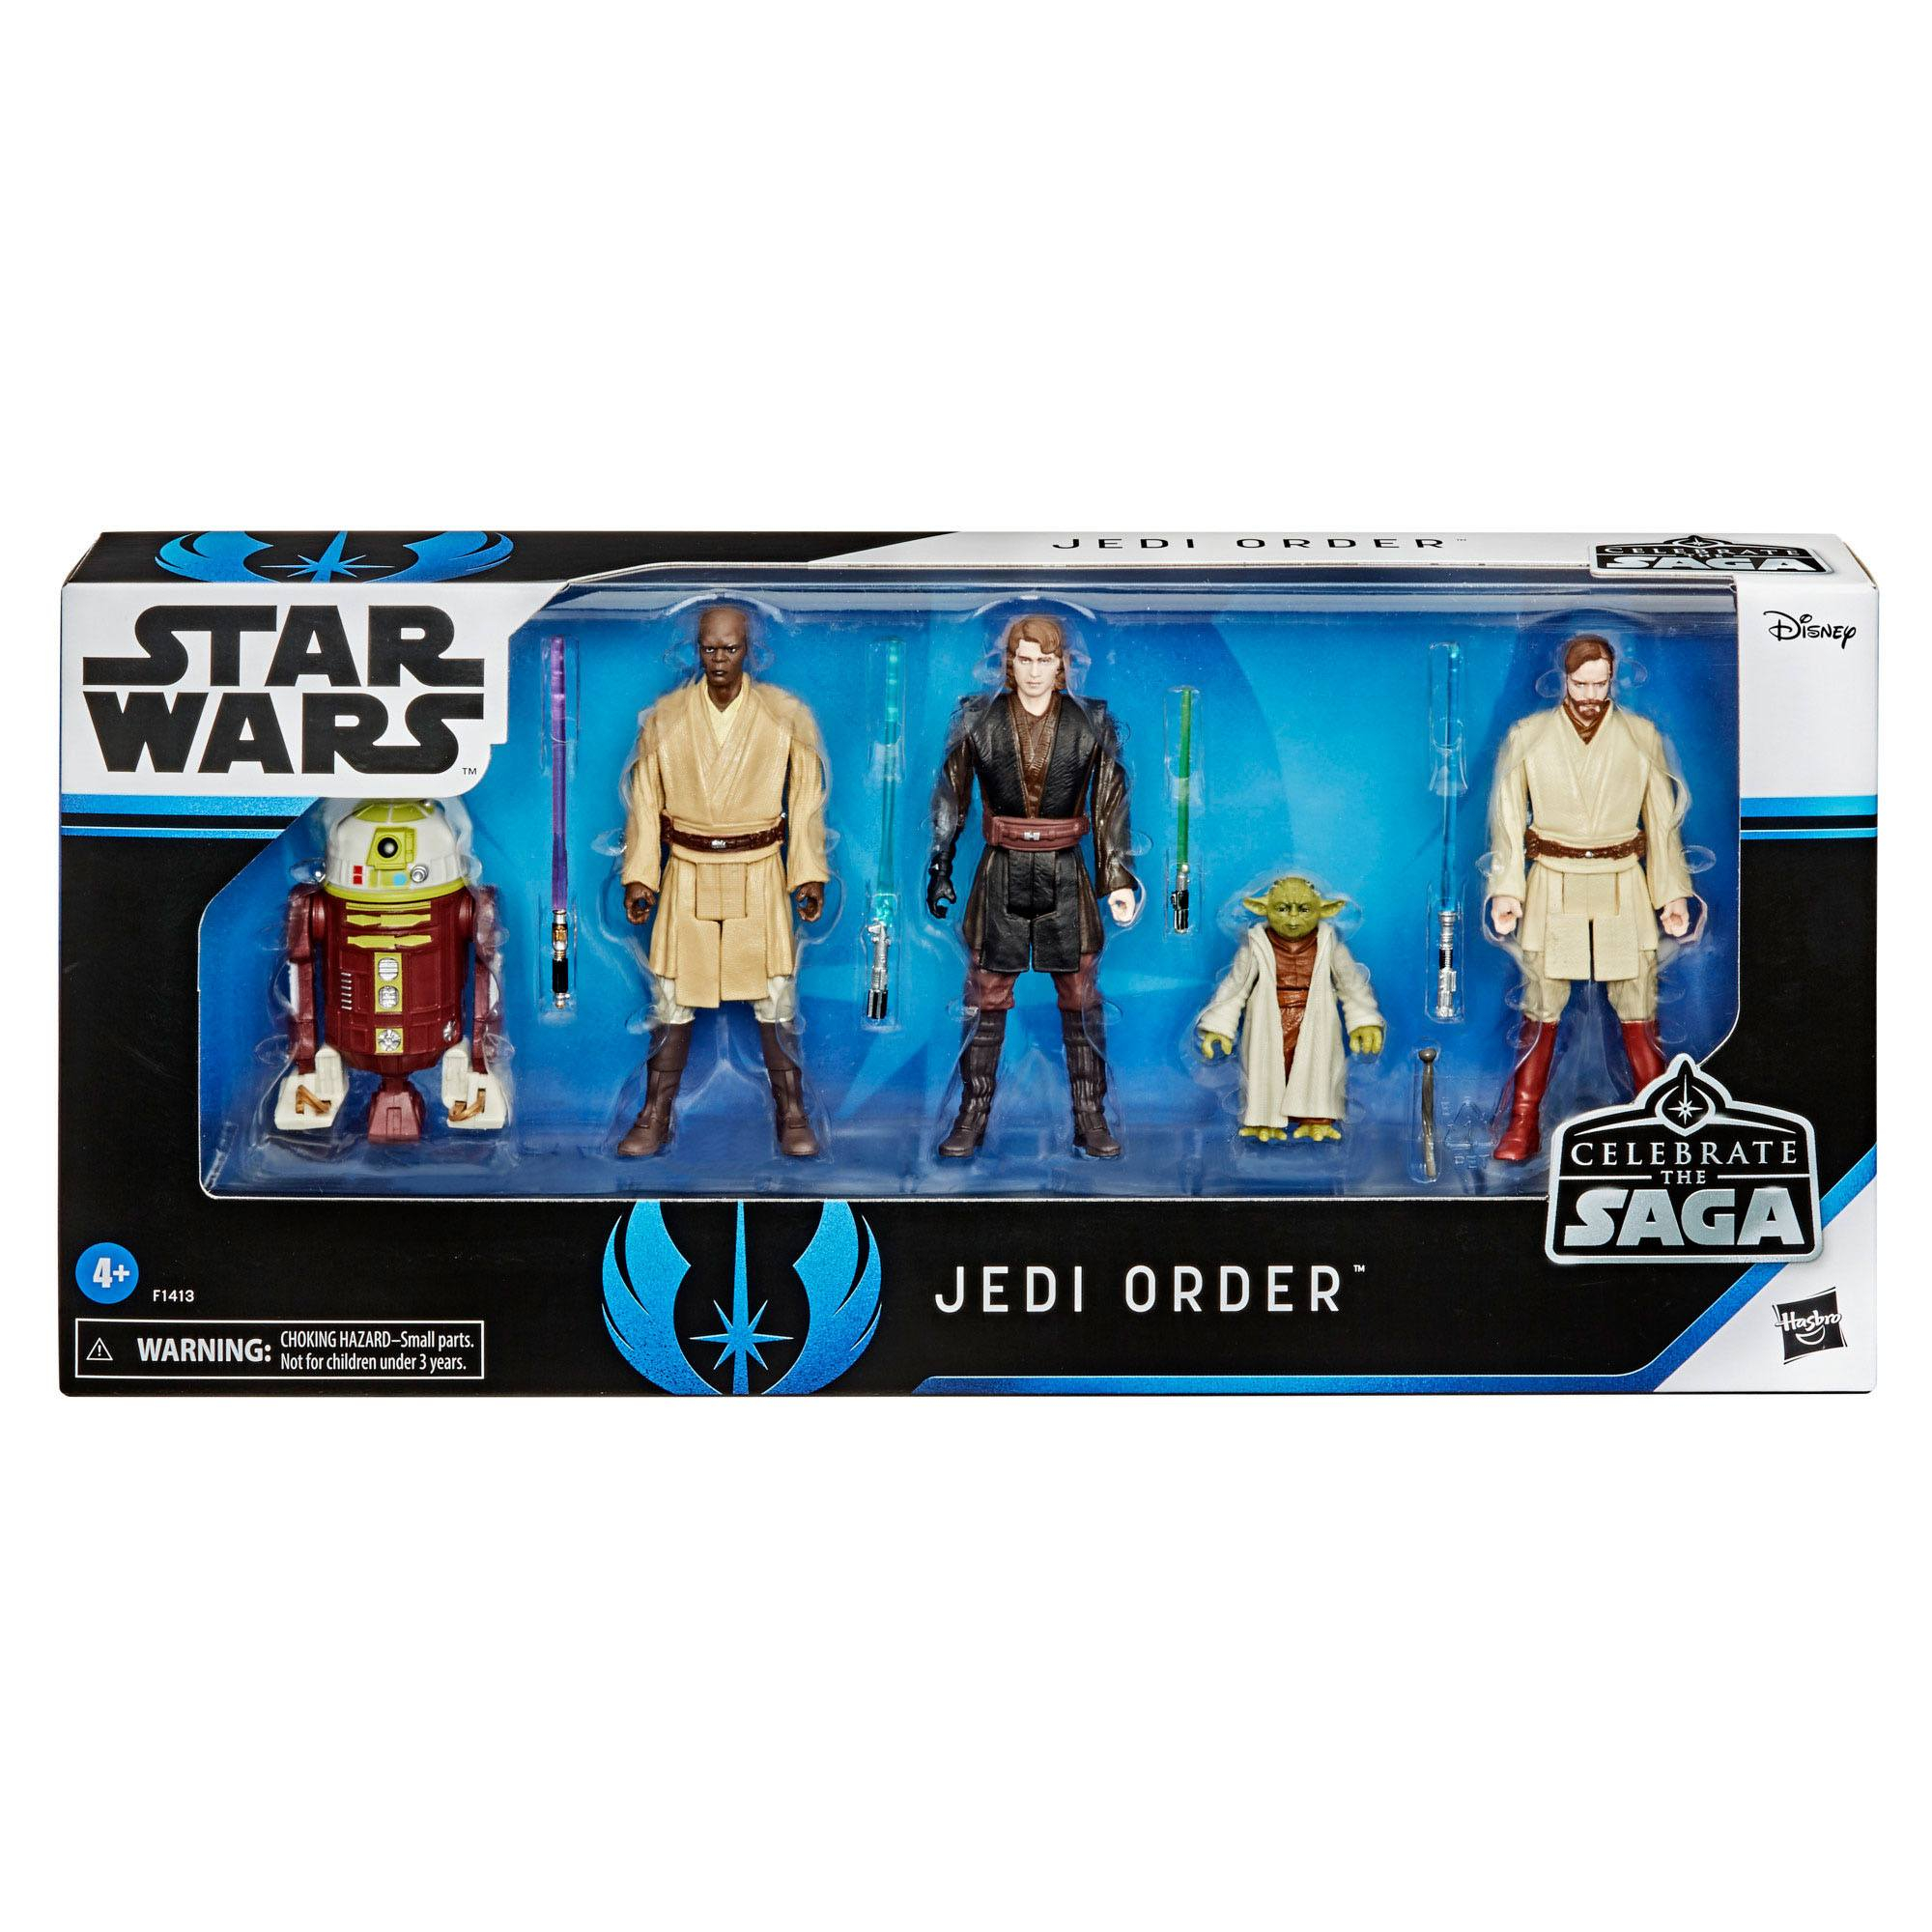 Star Wars Celebrate the Saga Action Figures: THE JEDI ORDER by Hasbro